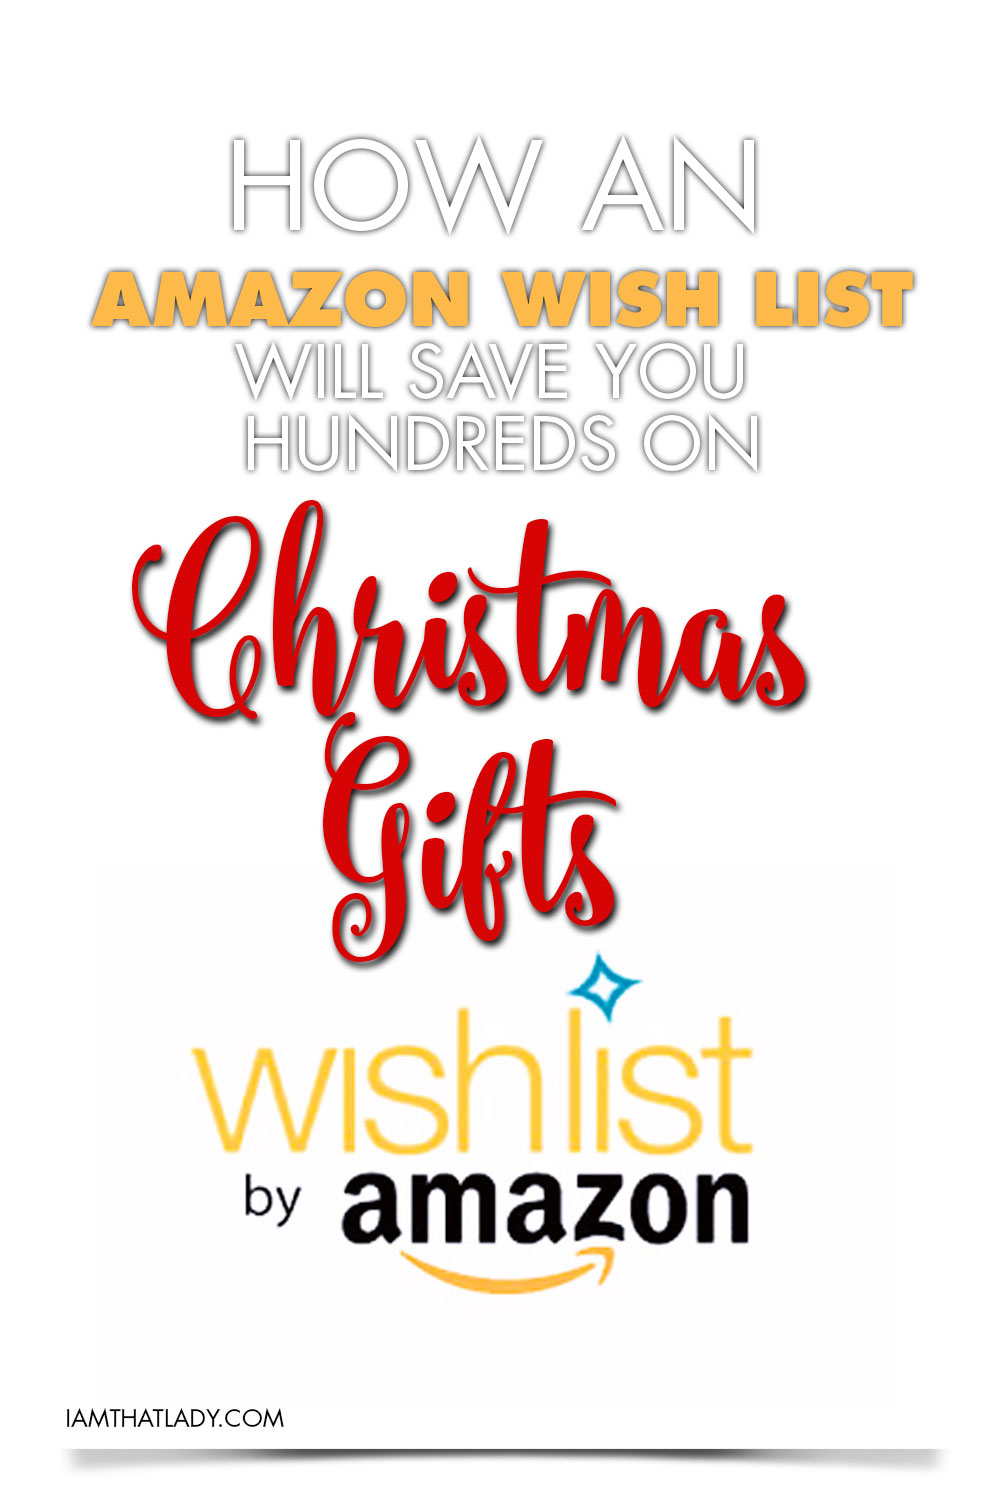 How an Amazon Wish List Will Save You Hundreds on Christmas Gifts ...